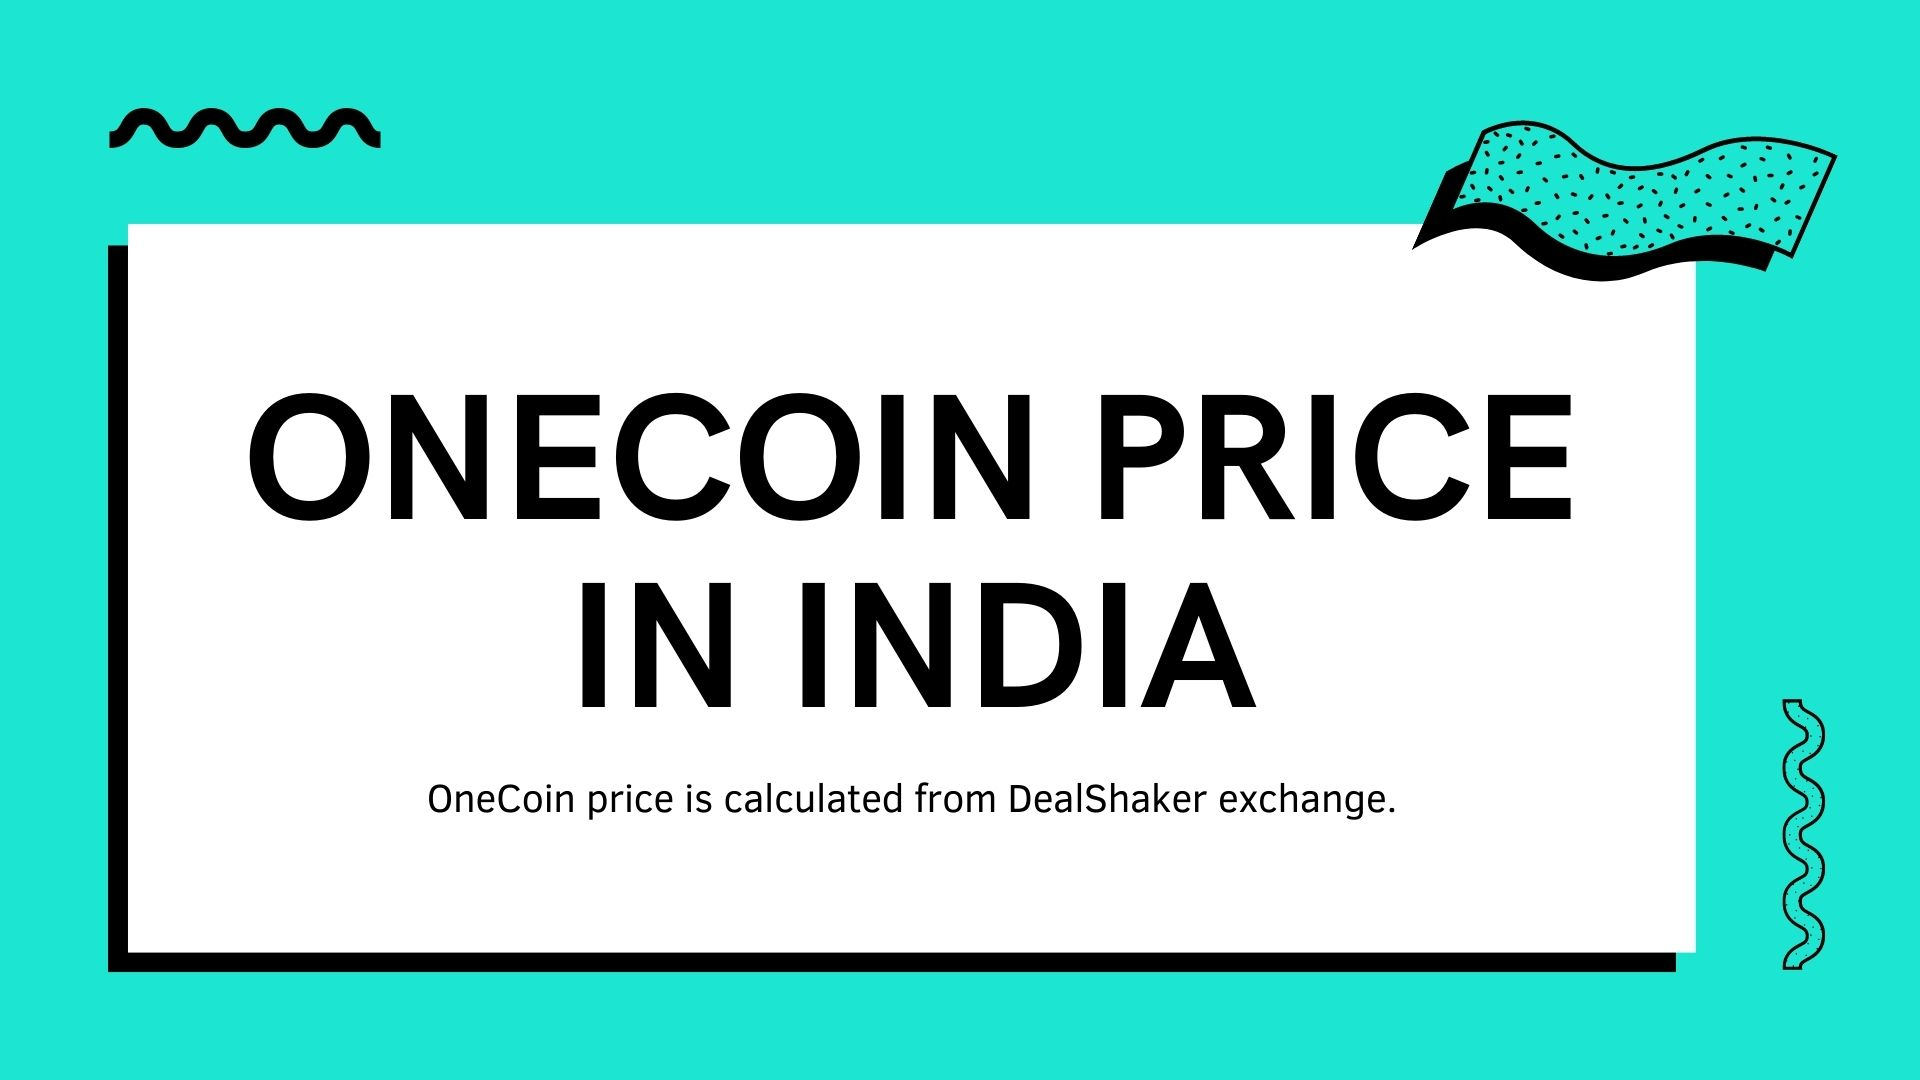 OneCoin Price In India